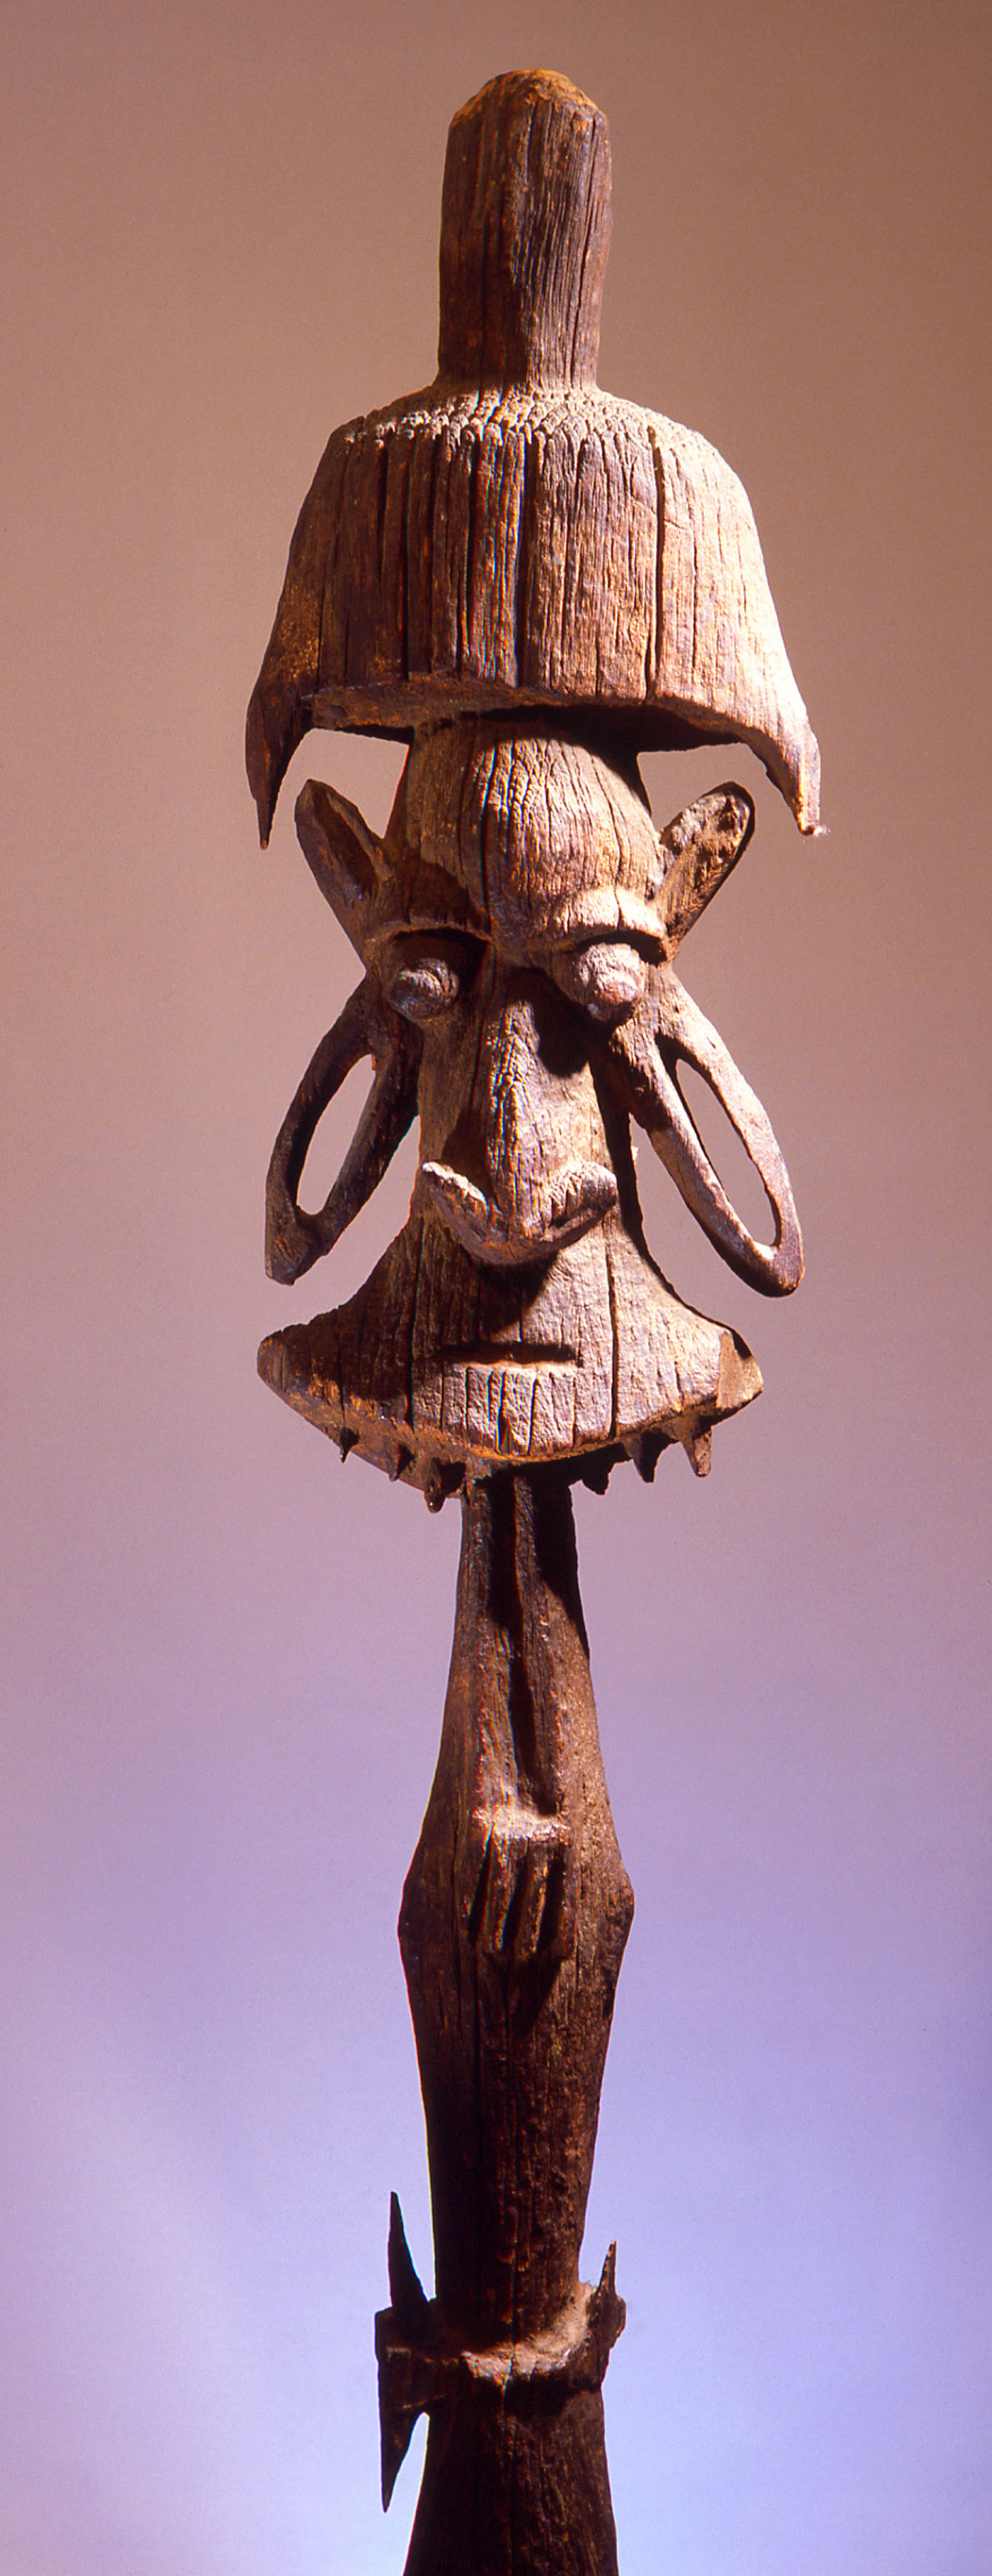 Roof finial post from a men's meeting house. New Caledonian carving employed a complex form of split representation where details of the head are separated into flat segments and the rear of the head is spread out above the face. Country of Origin: New Caledonia. Culture: Oceanic. Material Size: Wood. Credit Line: Werner Forman Archive / Private Collection.